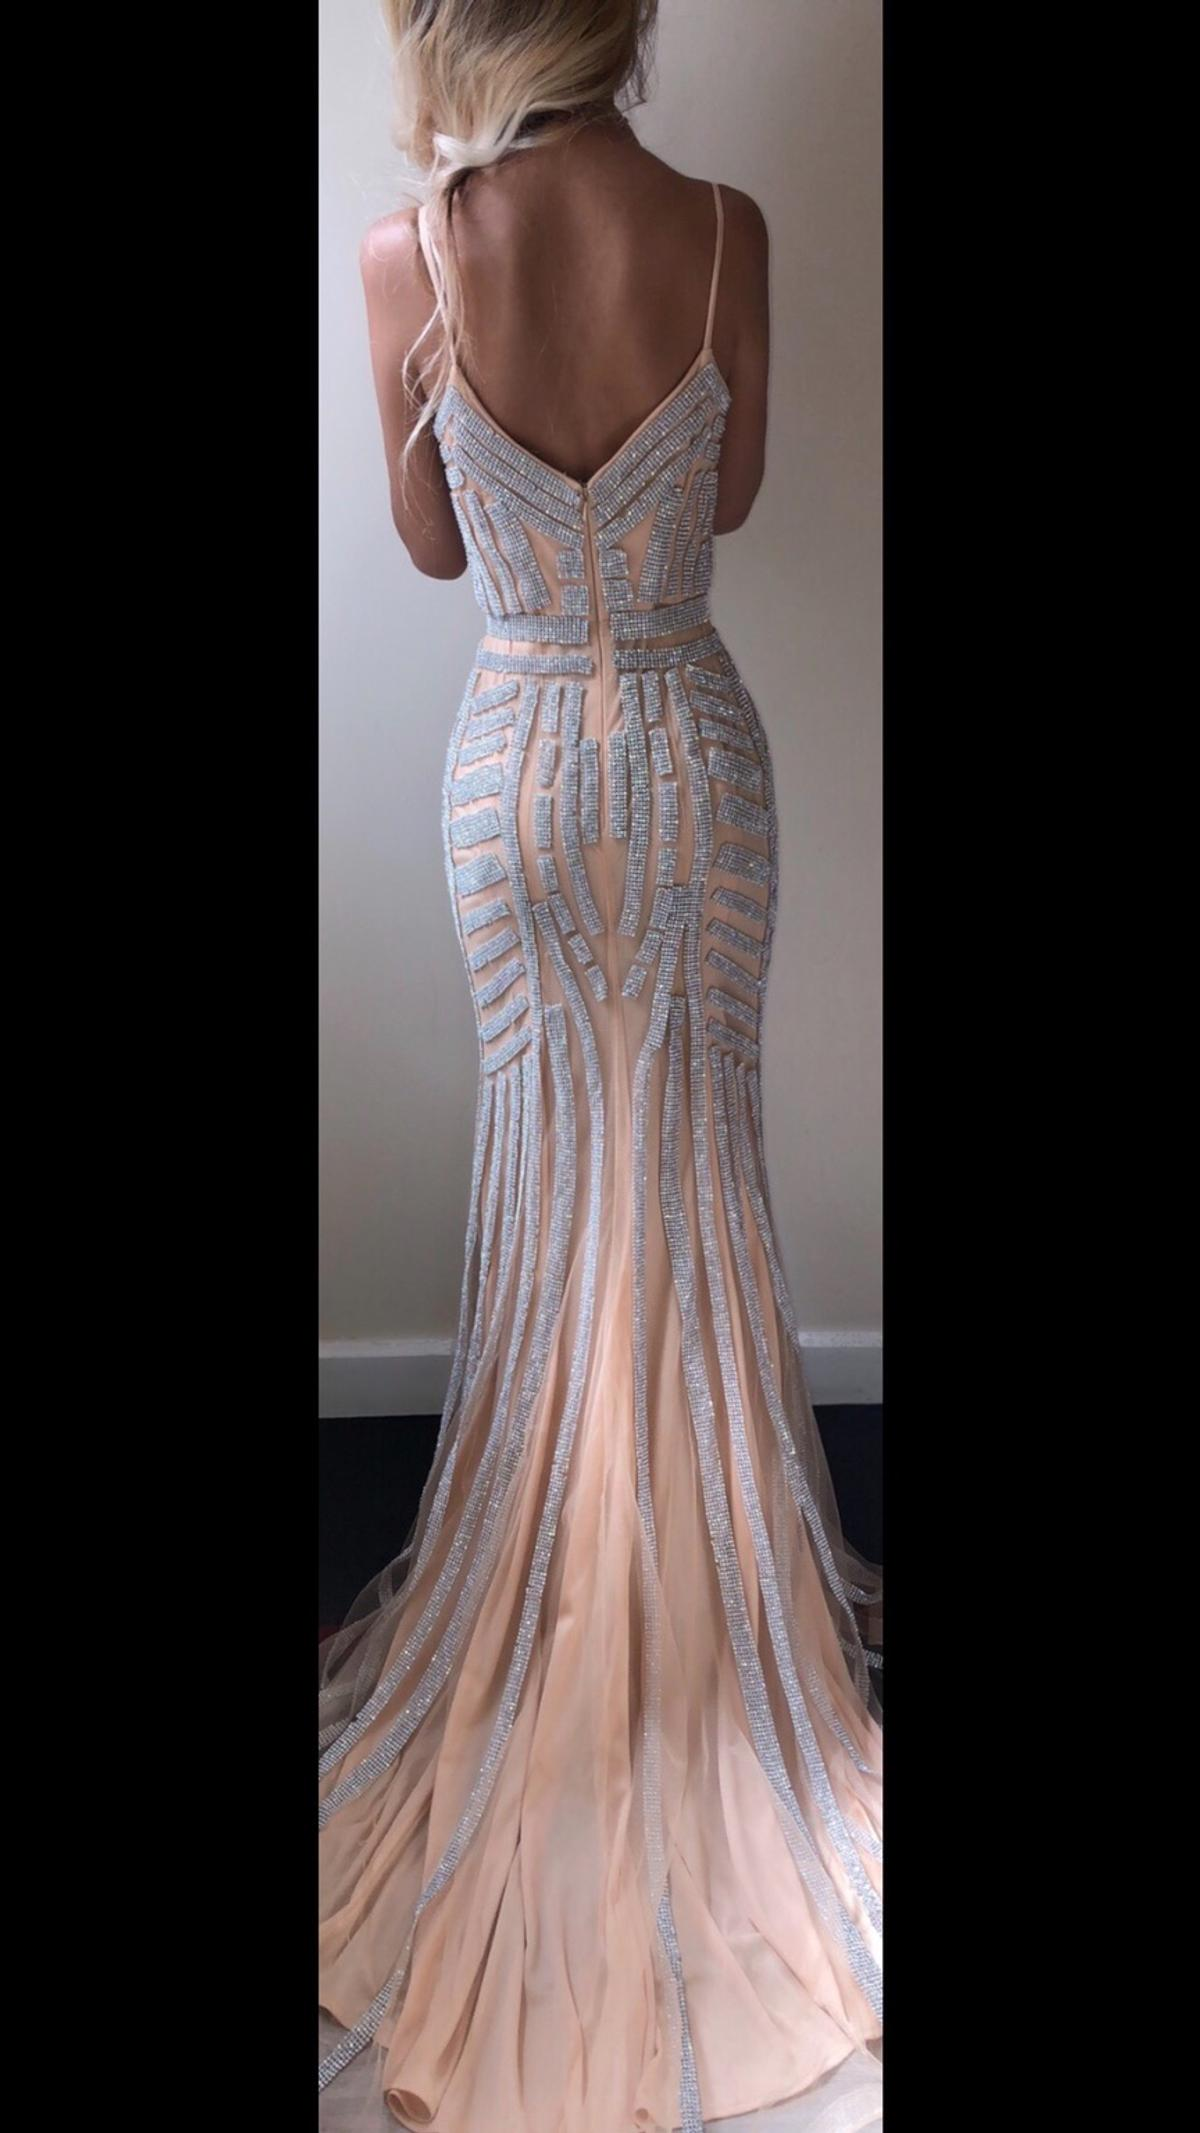 Worn for a couple of hours so it is still in immaculate condition. Measurements: bust - 32/34 waist - 24/26 hip - 34/36